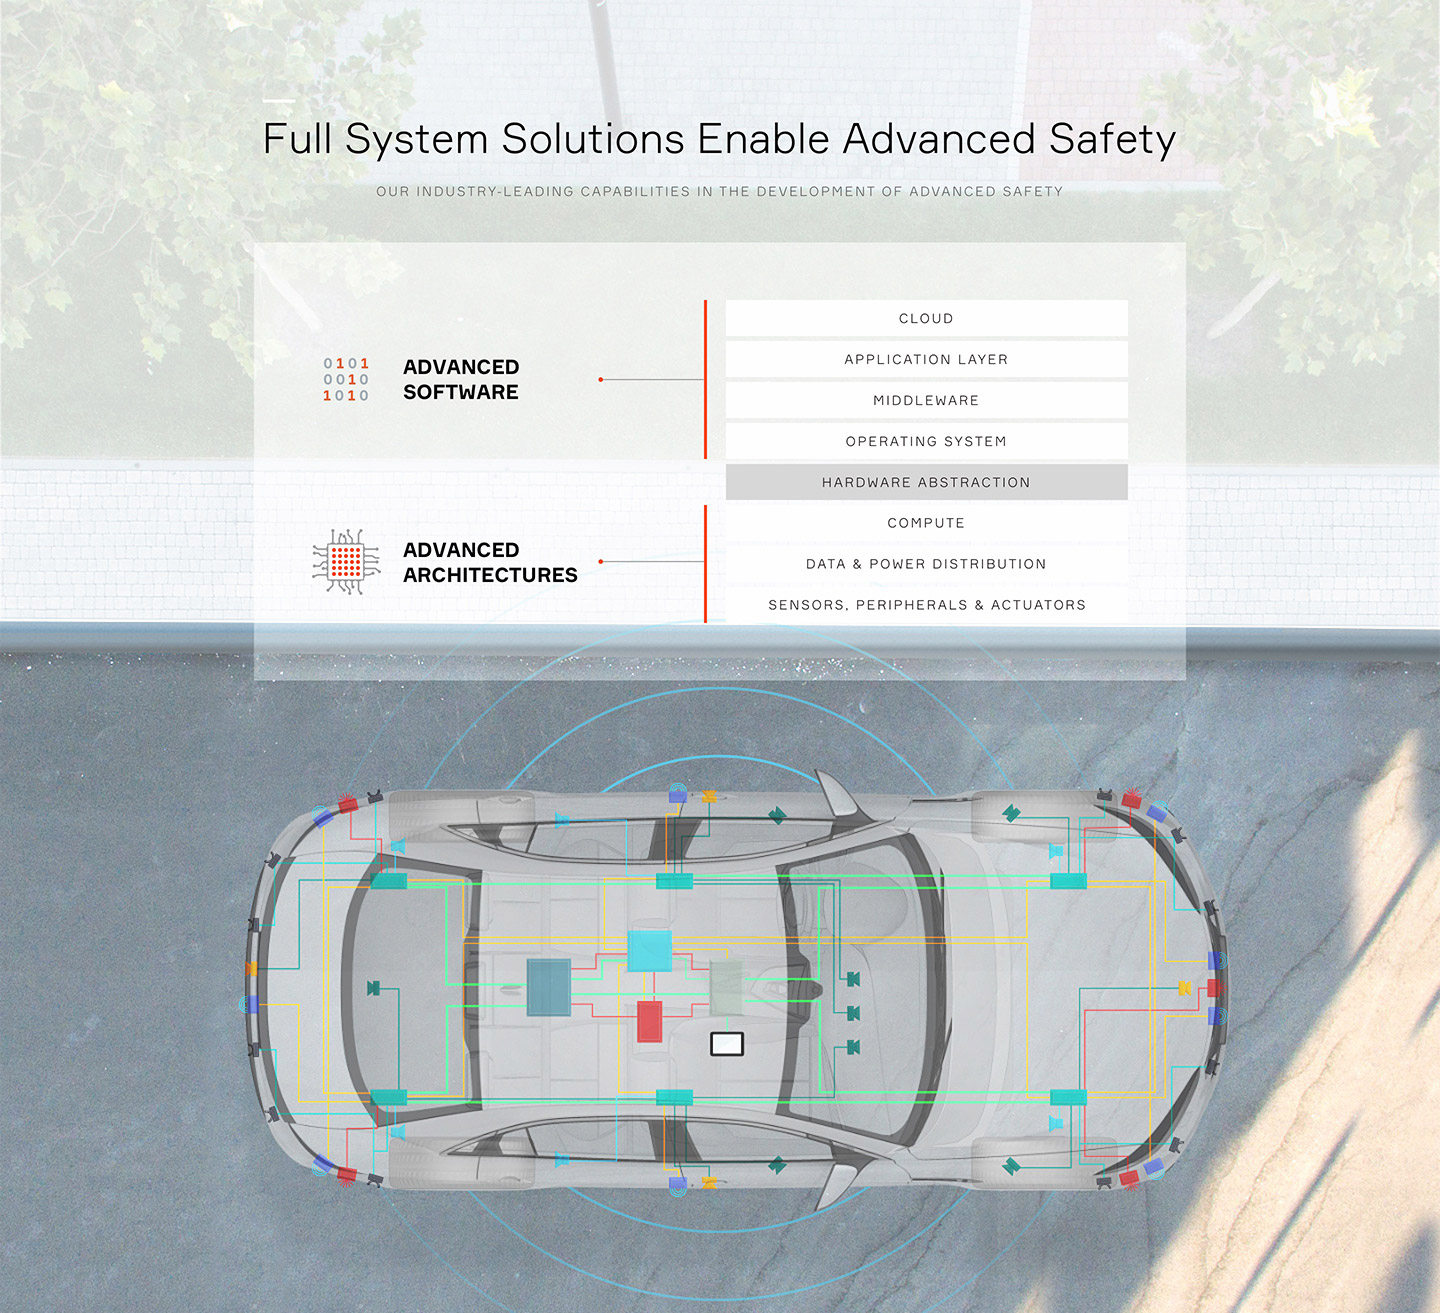 Full System Solutions Enable Advanced Safety